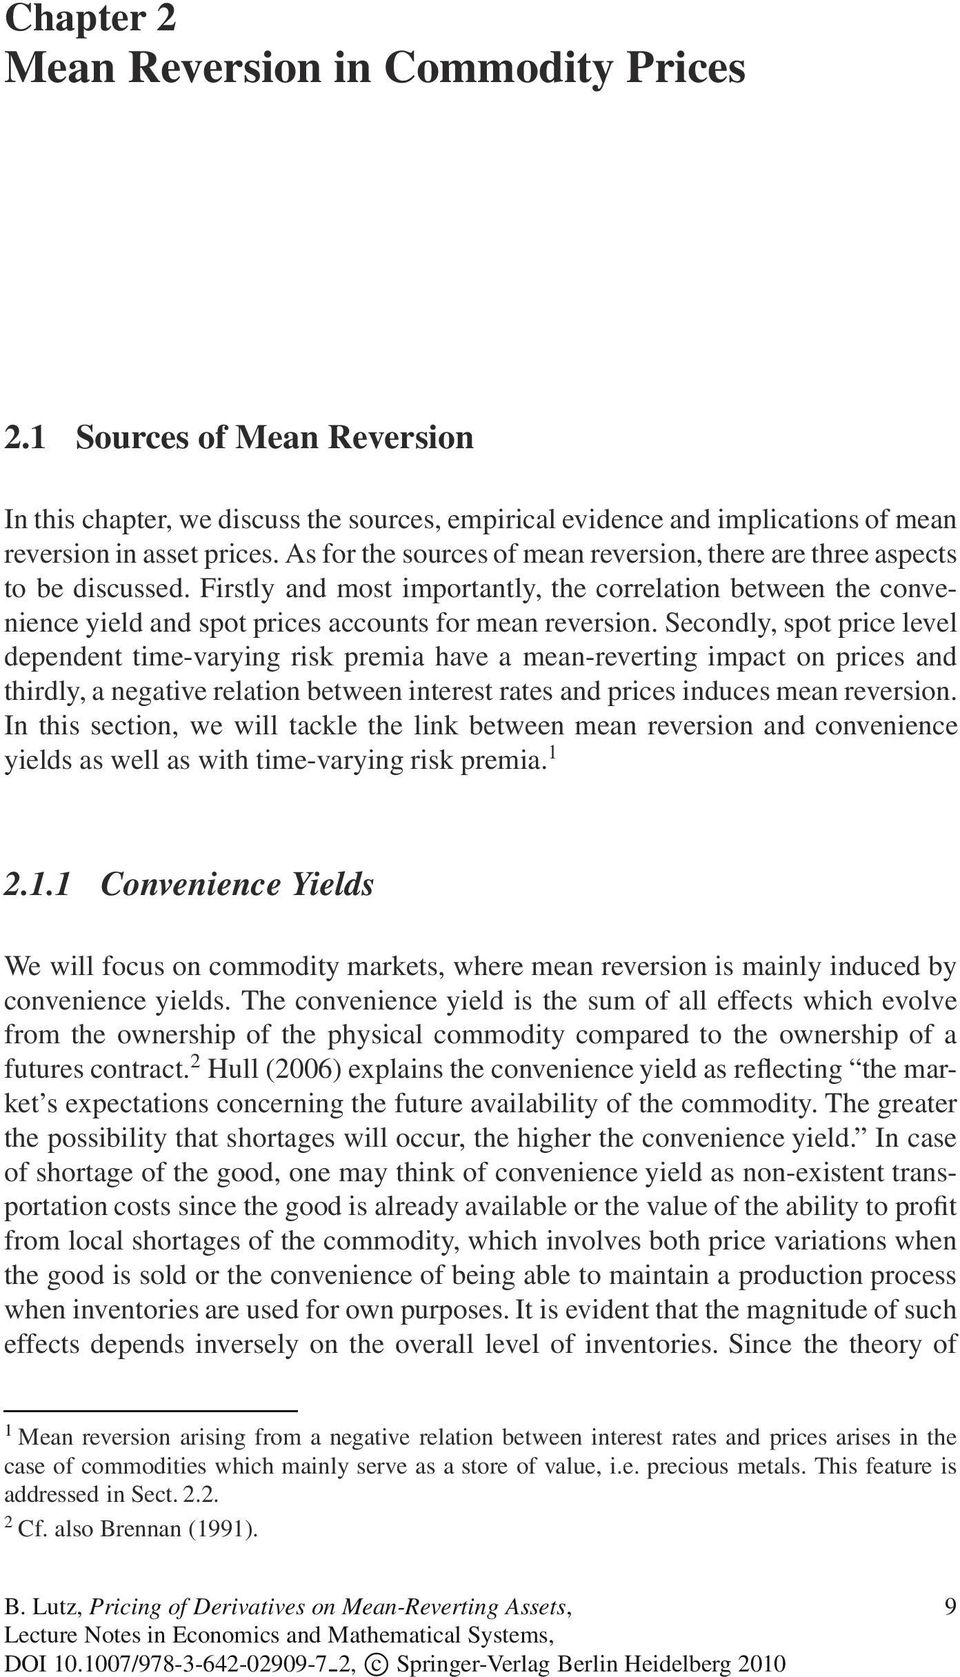 Secondly, spot price level dependent time-varying risk premia have a mean-reverting impact on prices and thirdly, a negative relation between interest rates and prices induces mean reversion.